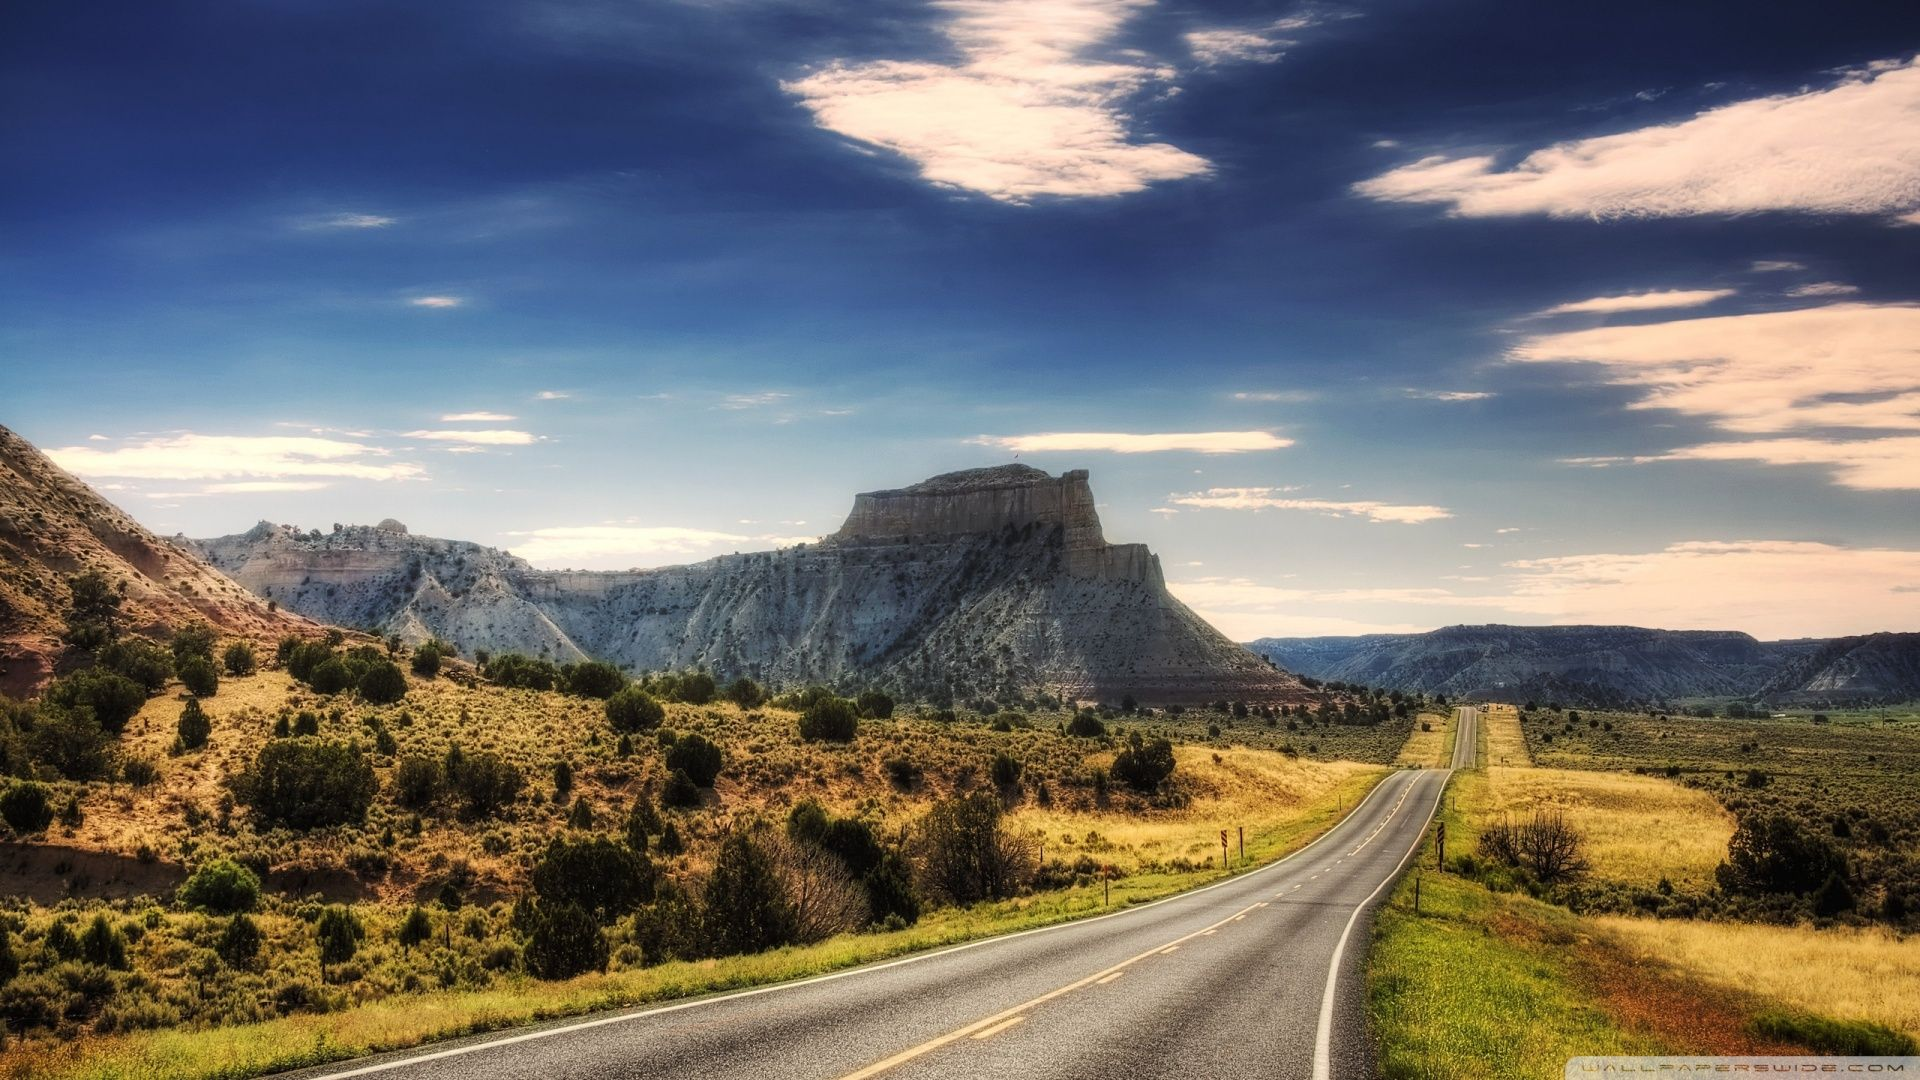 american road wallpaper - photo #15